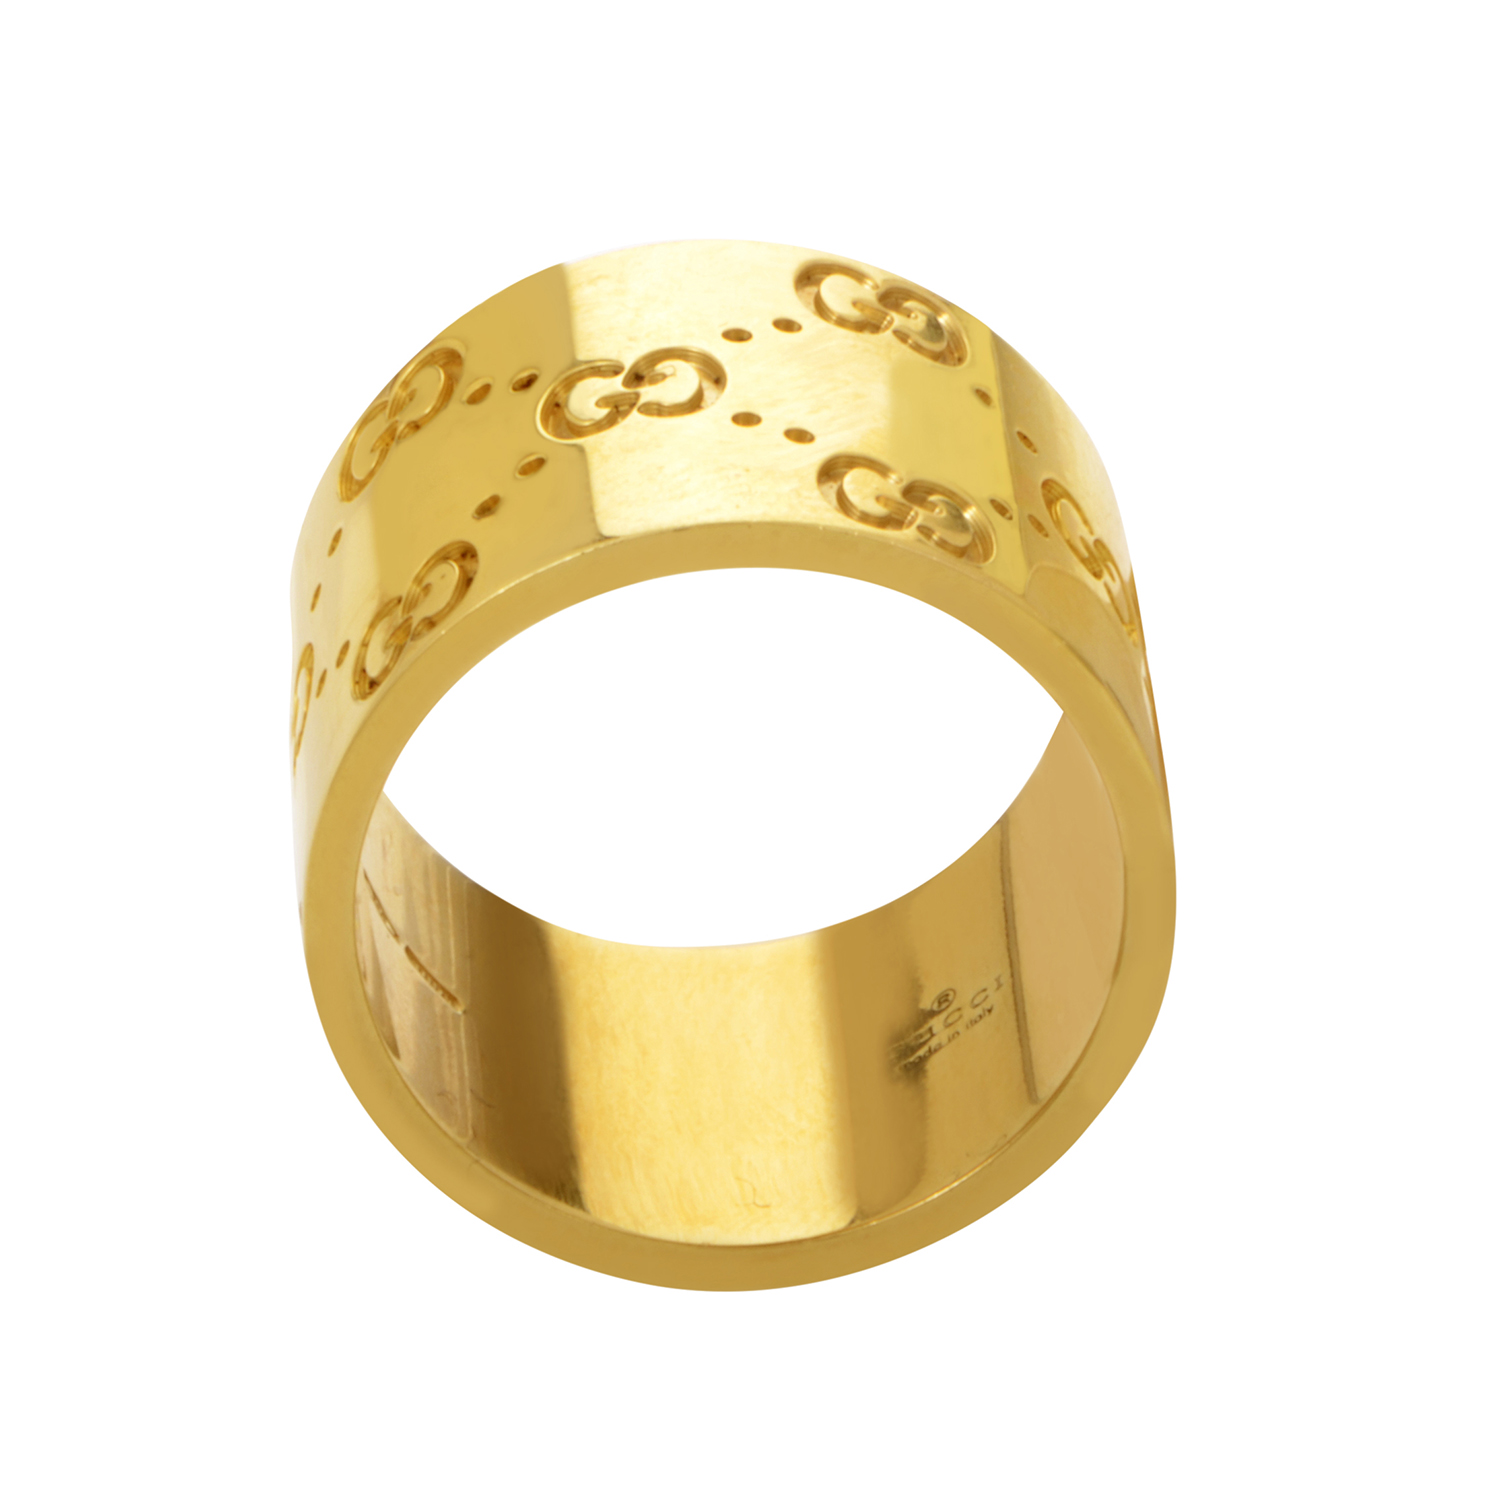 Gucci Icon Womens 18K Yellow Gold Wide Band Ring 05065561  eBay